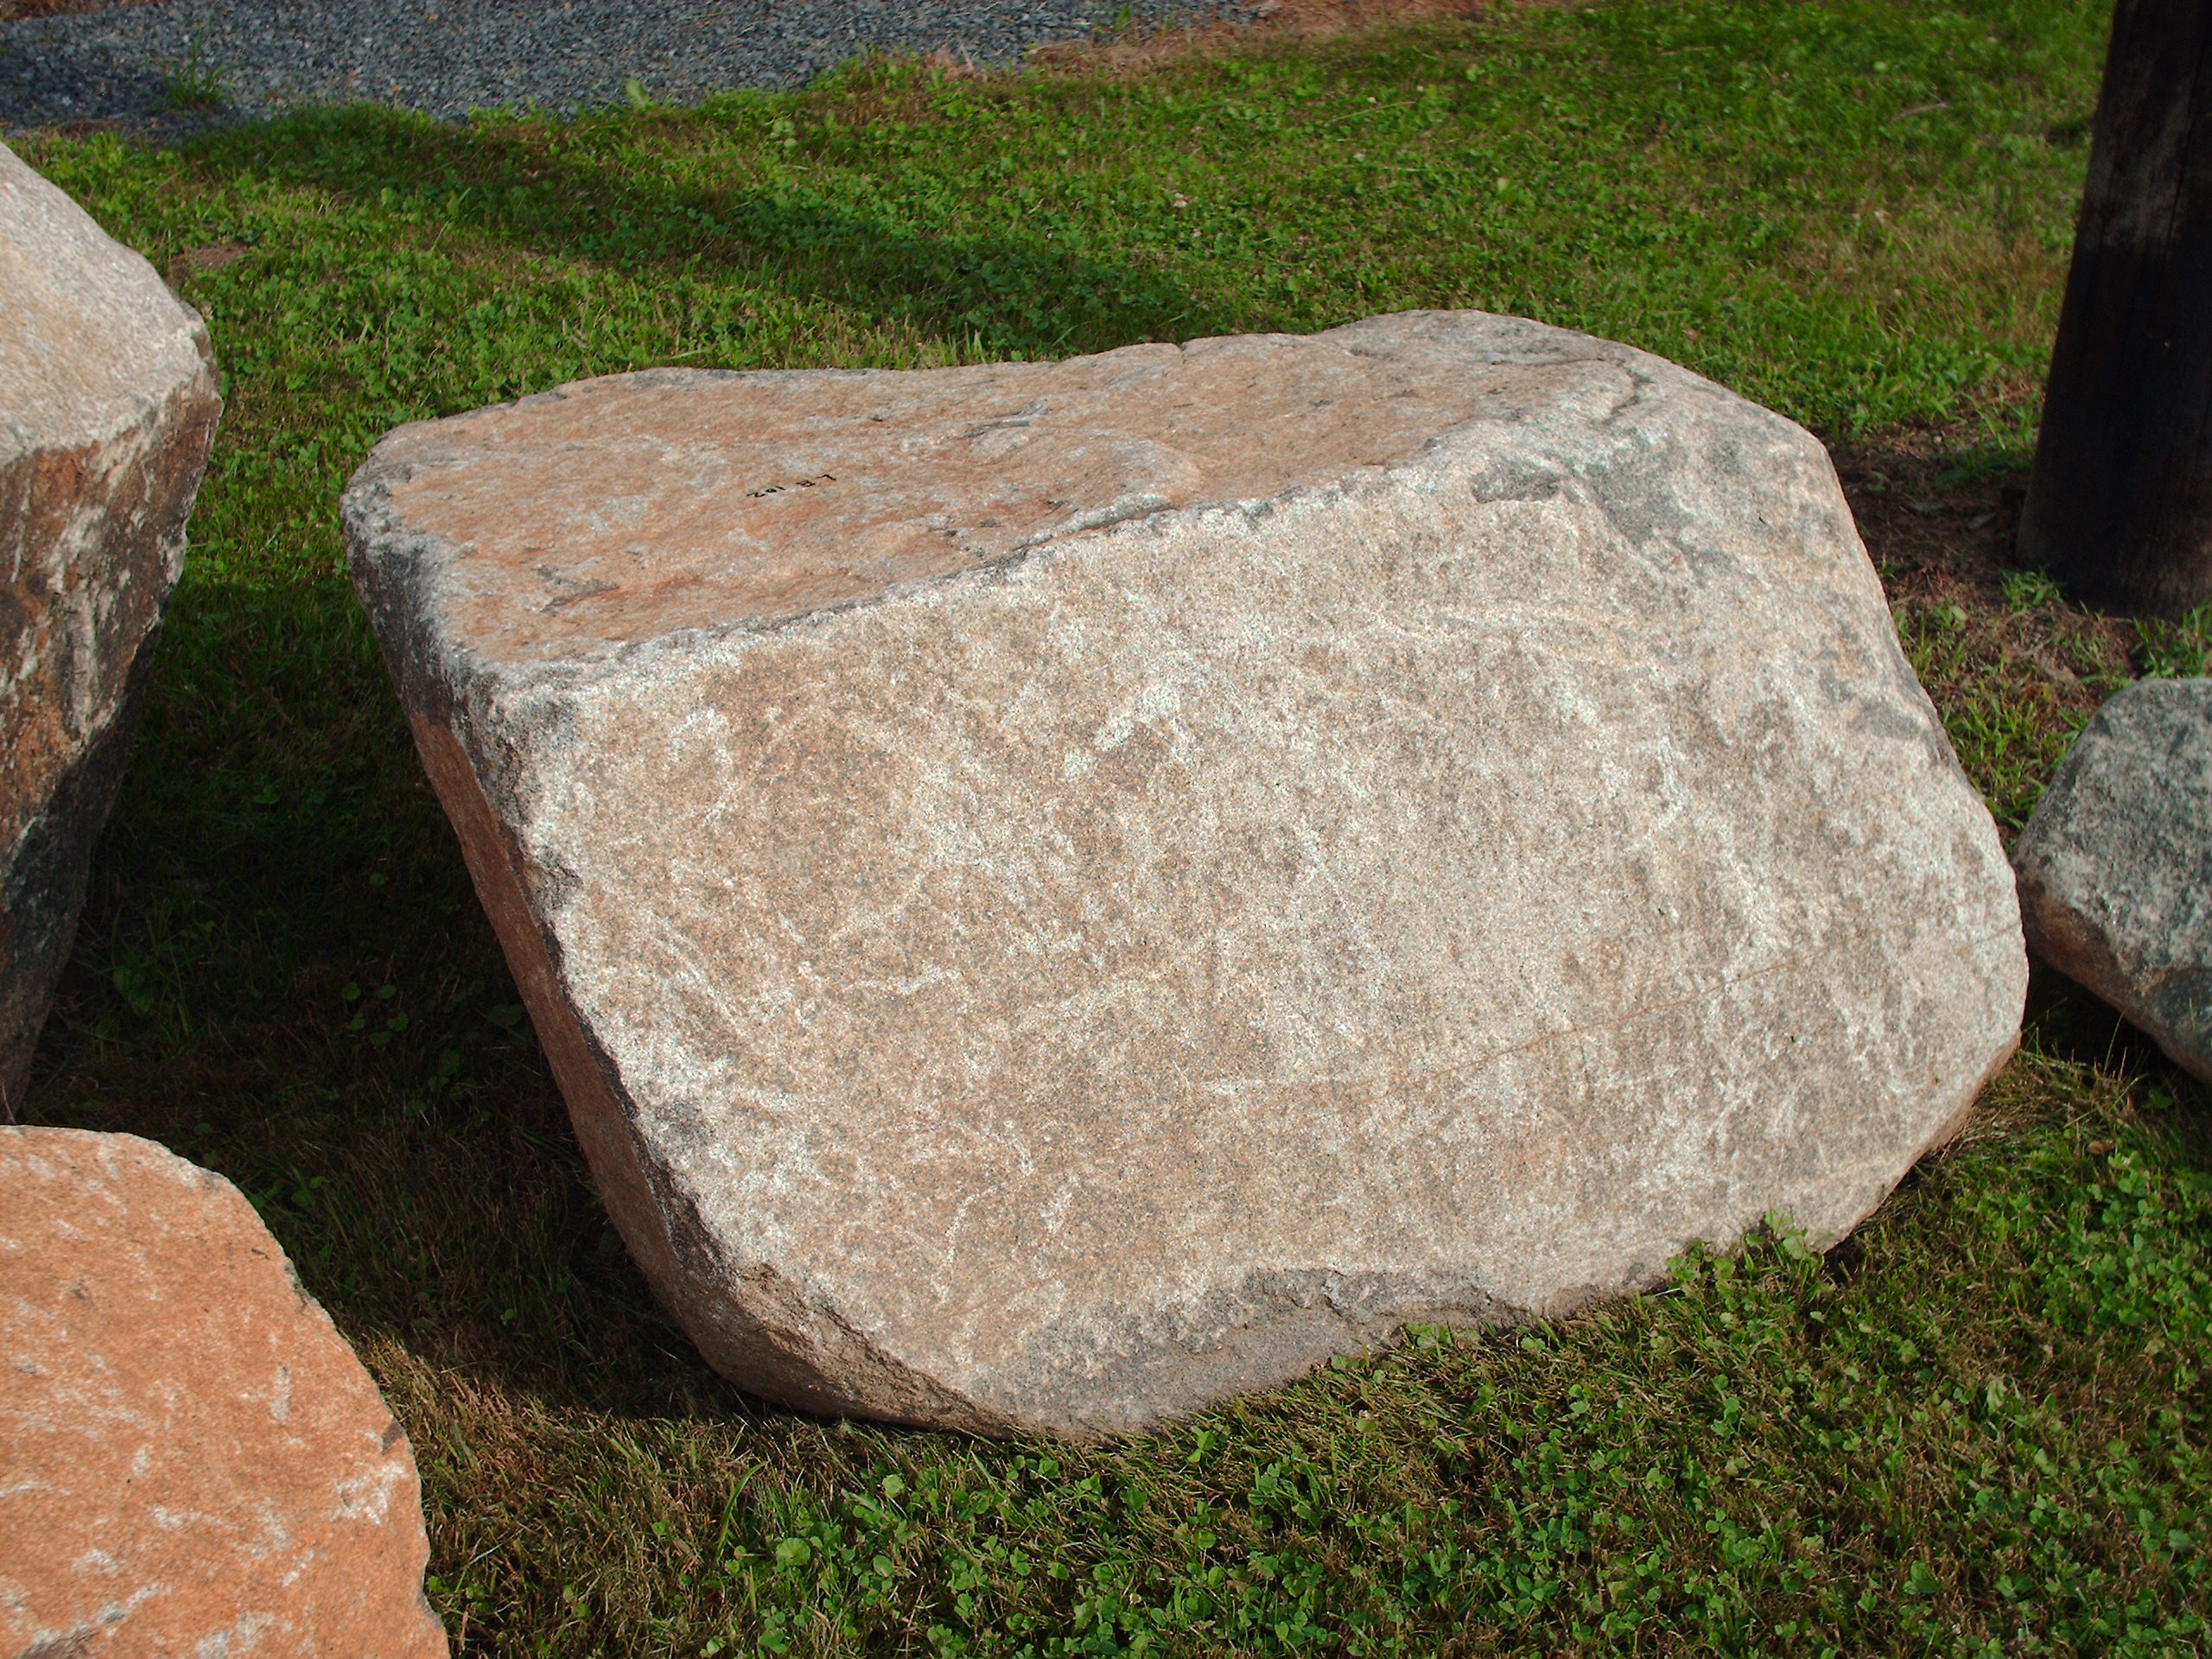 Large landscaping river rocks for sale motorcycle review for Large garden stones for sale